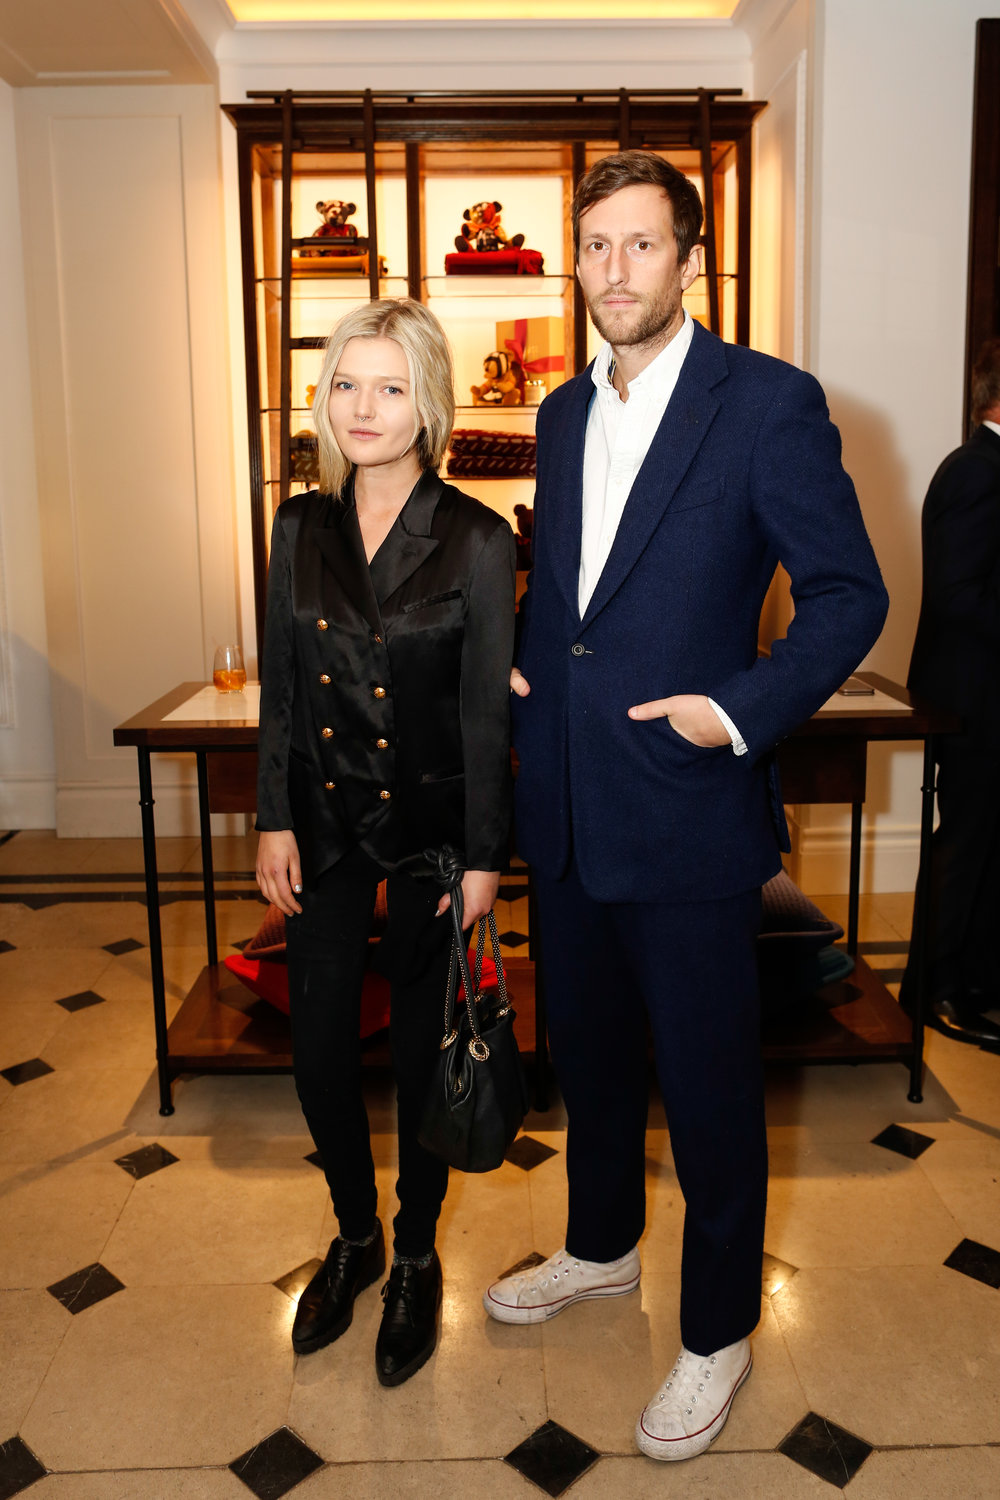 Sophie Kennedy Clark wearing Burberry with guest at the Burberry So It Goes event at Thomas's, London, 9th February 2016